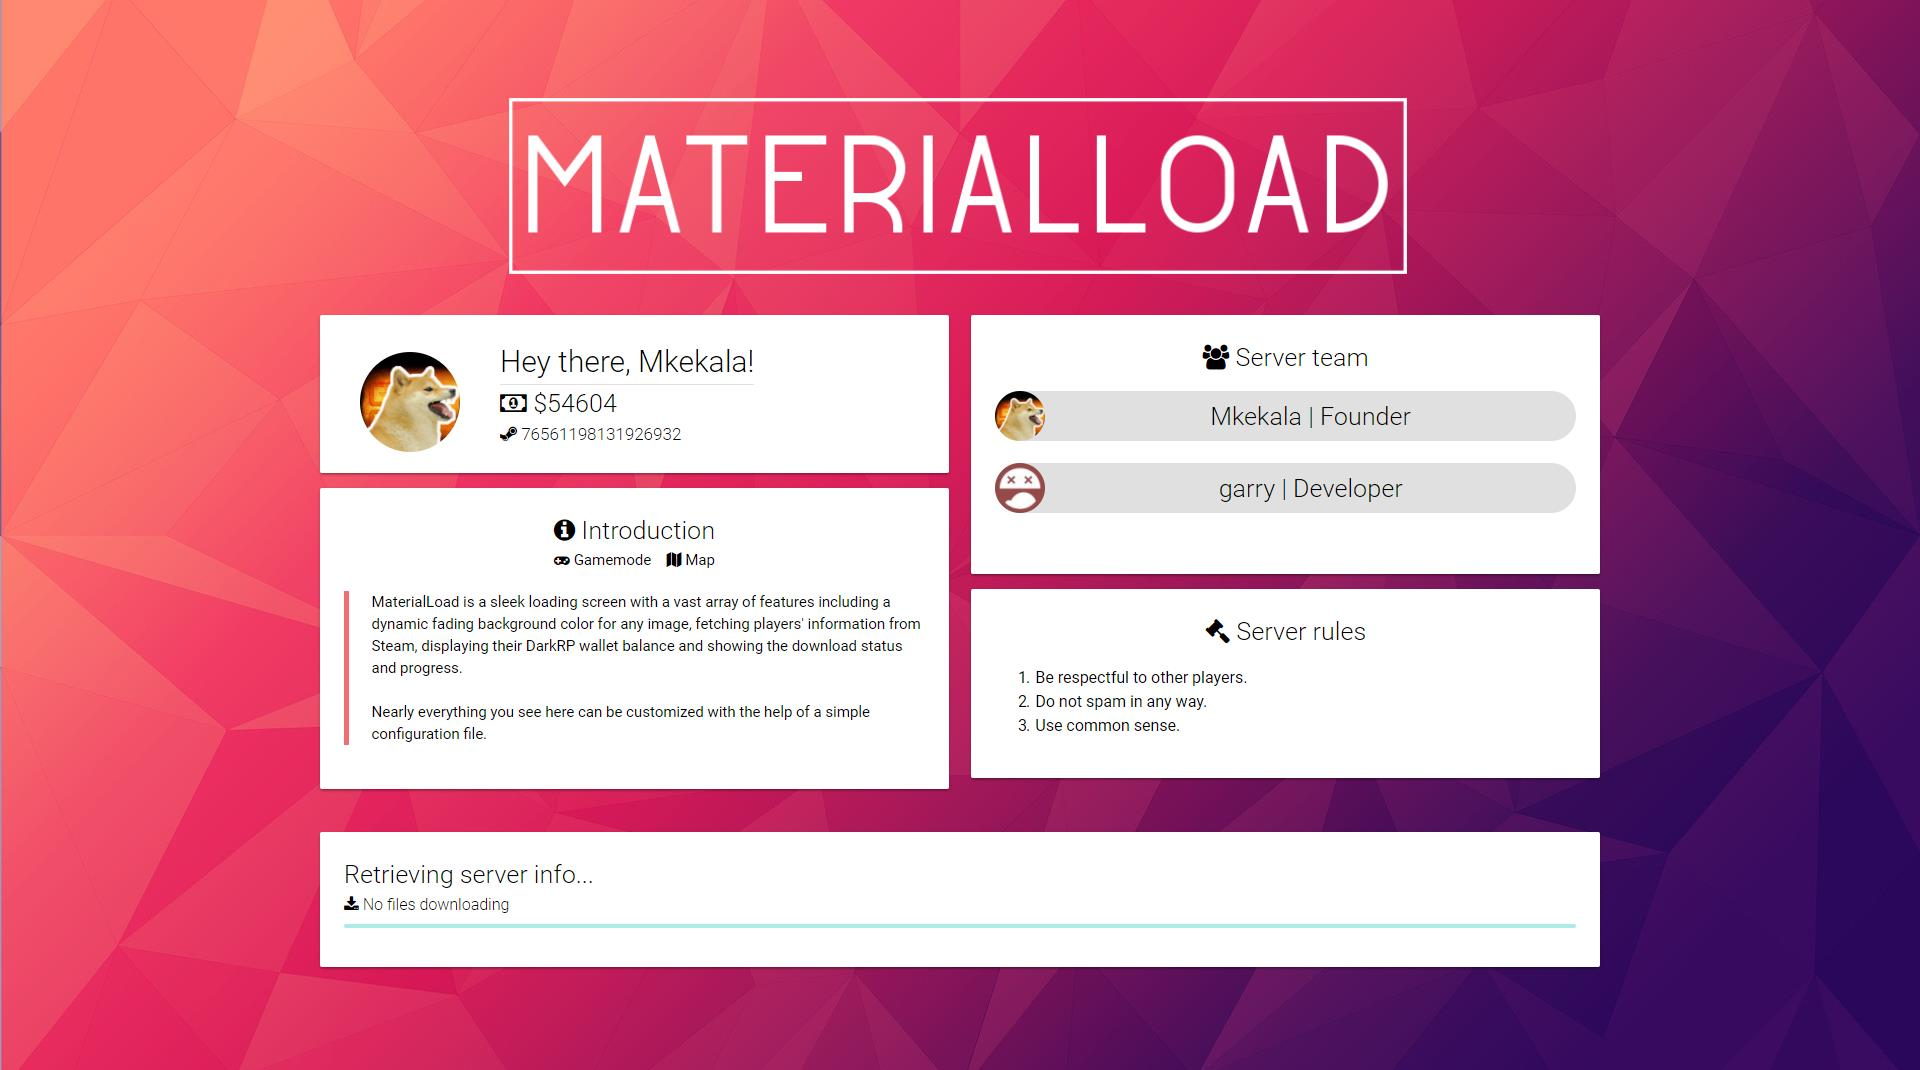 MaterialLoad - the perfect loading screen for your server